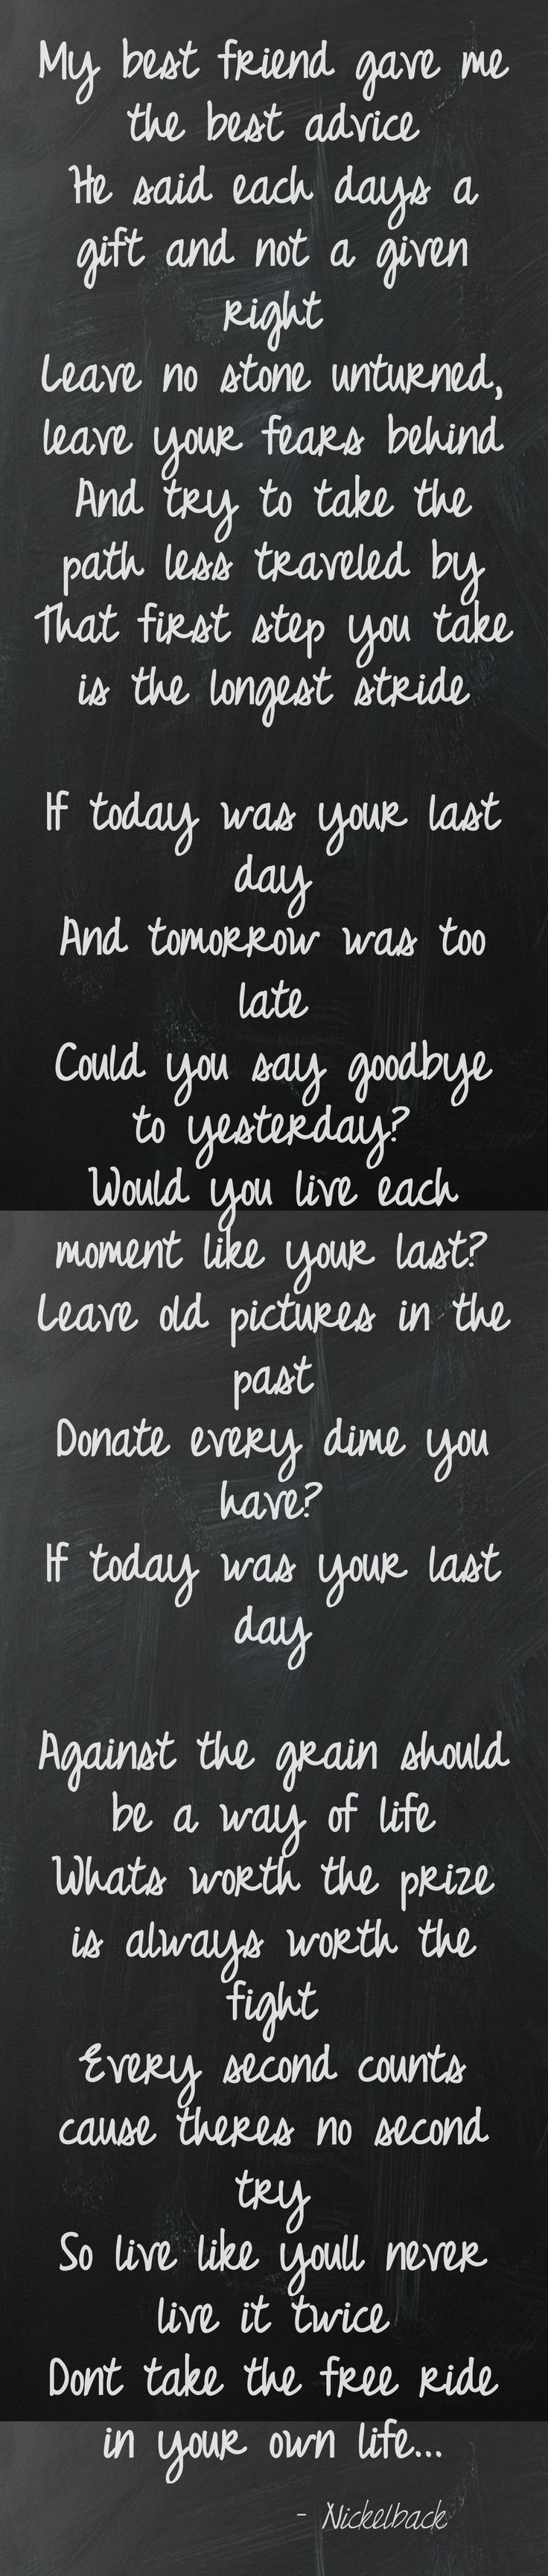 """""""If today was your last day"""" by Nickelback"""